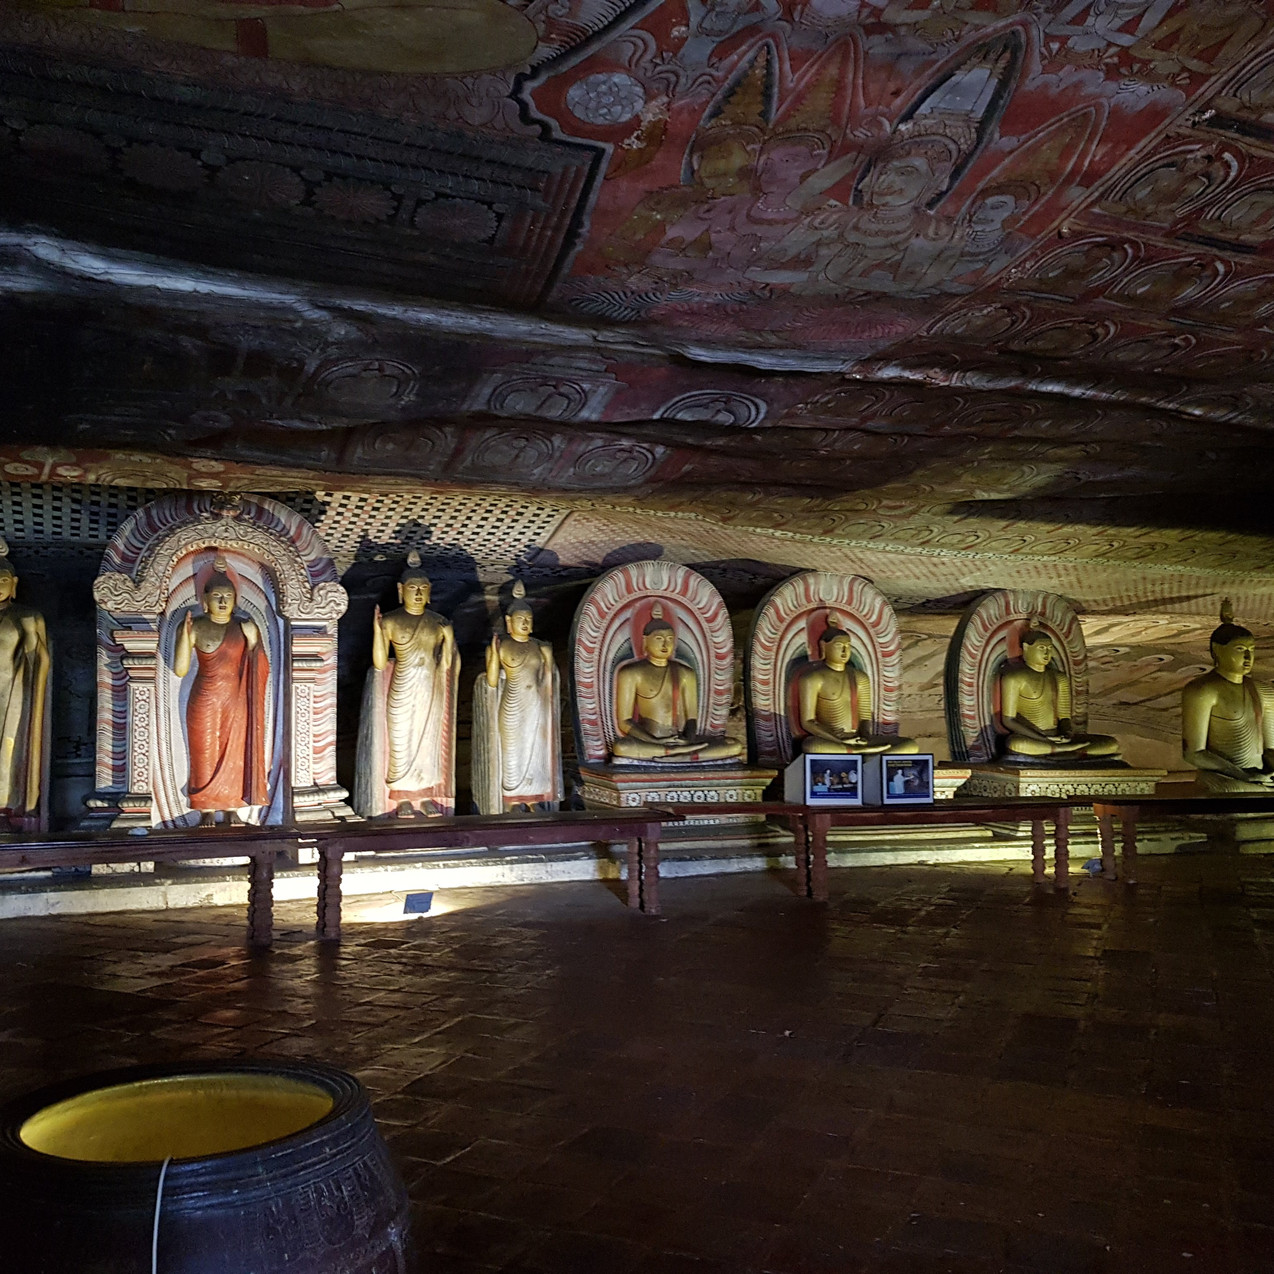 Buddha statues in all shapes and sizes